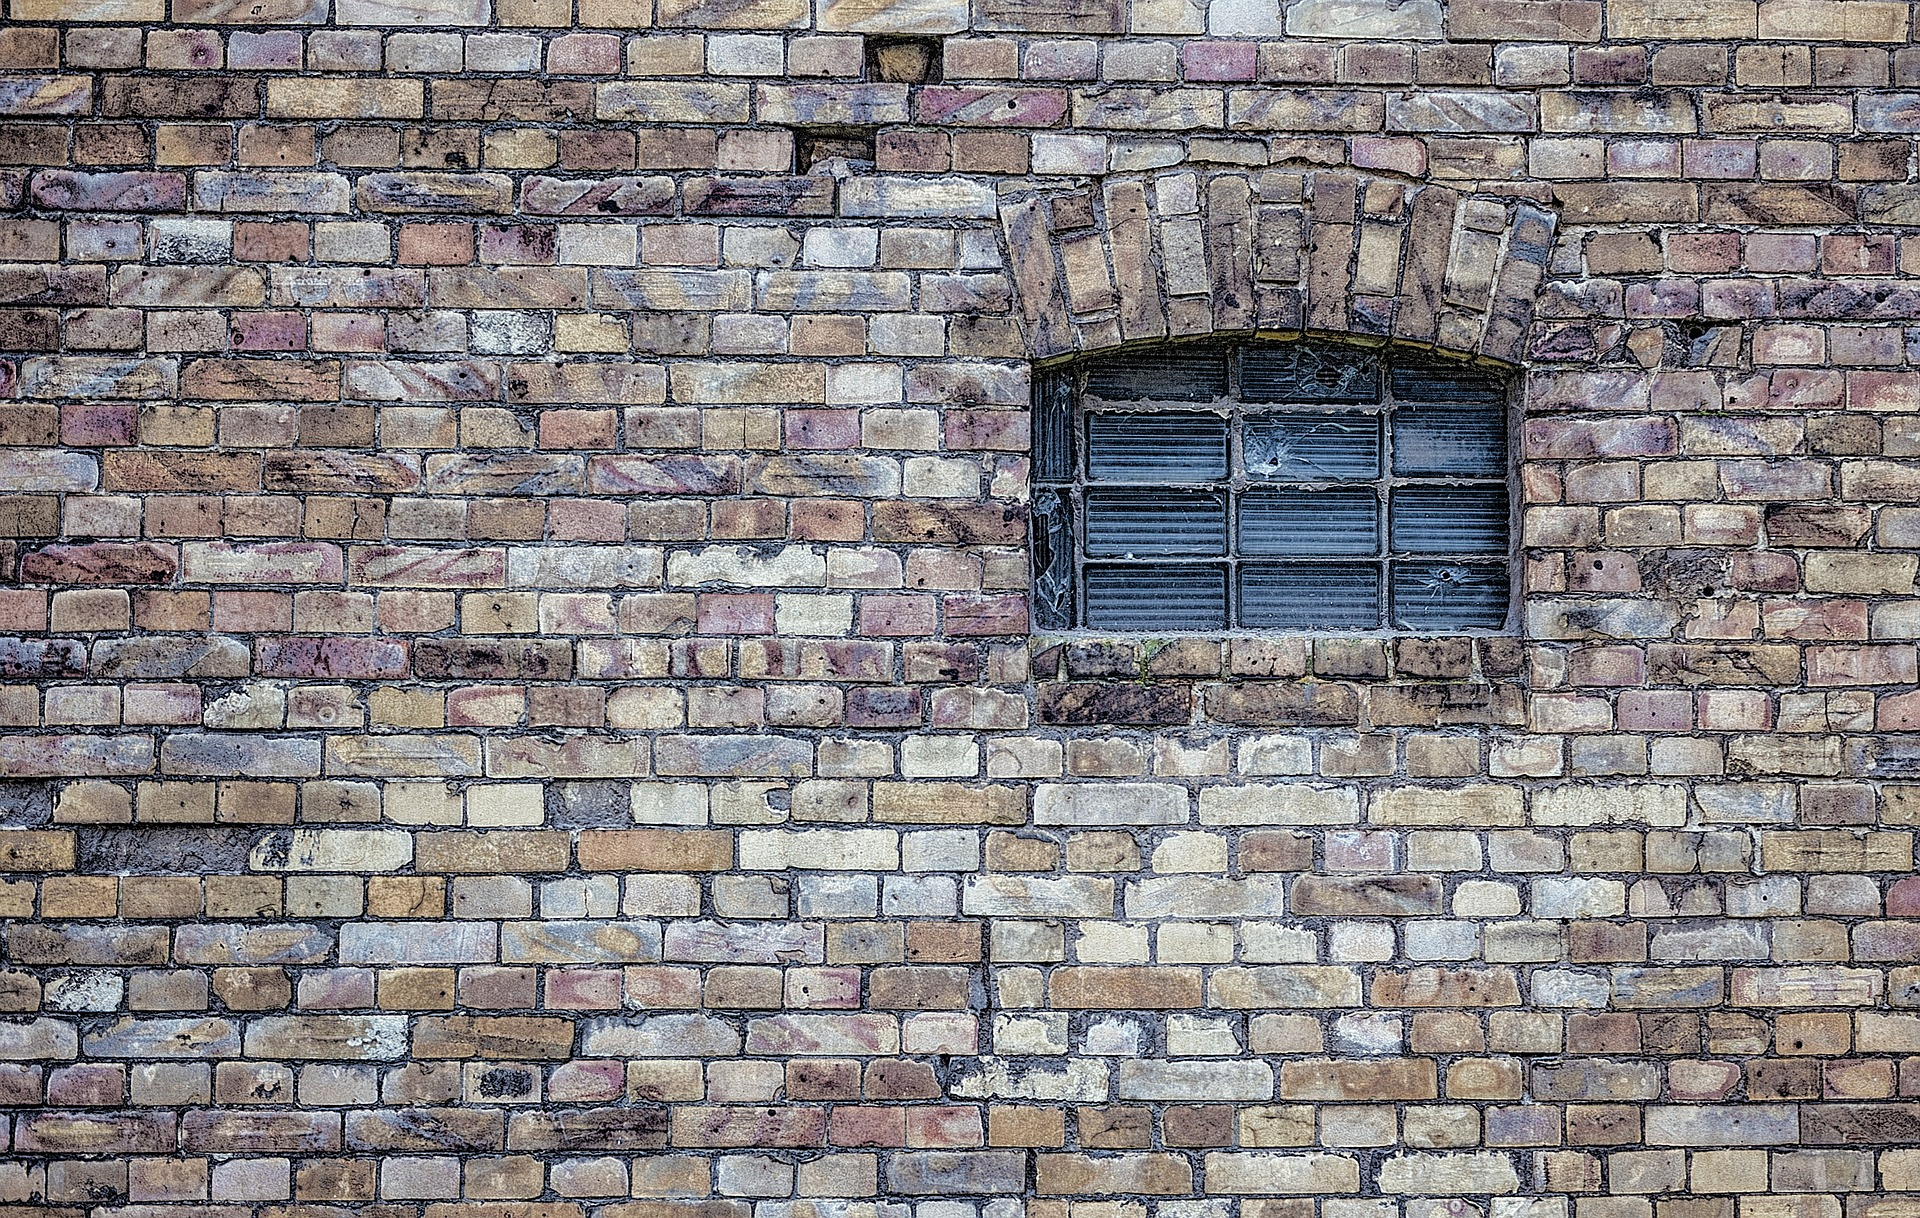 Brick wall with a barred window